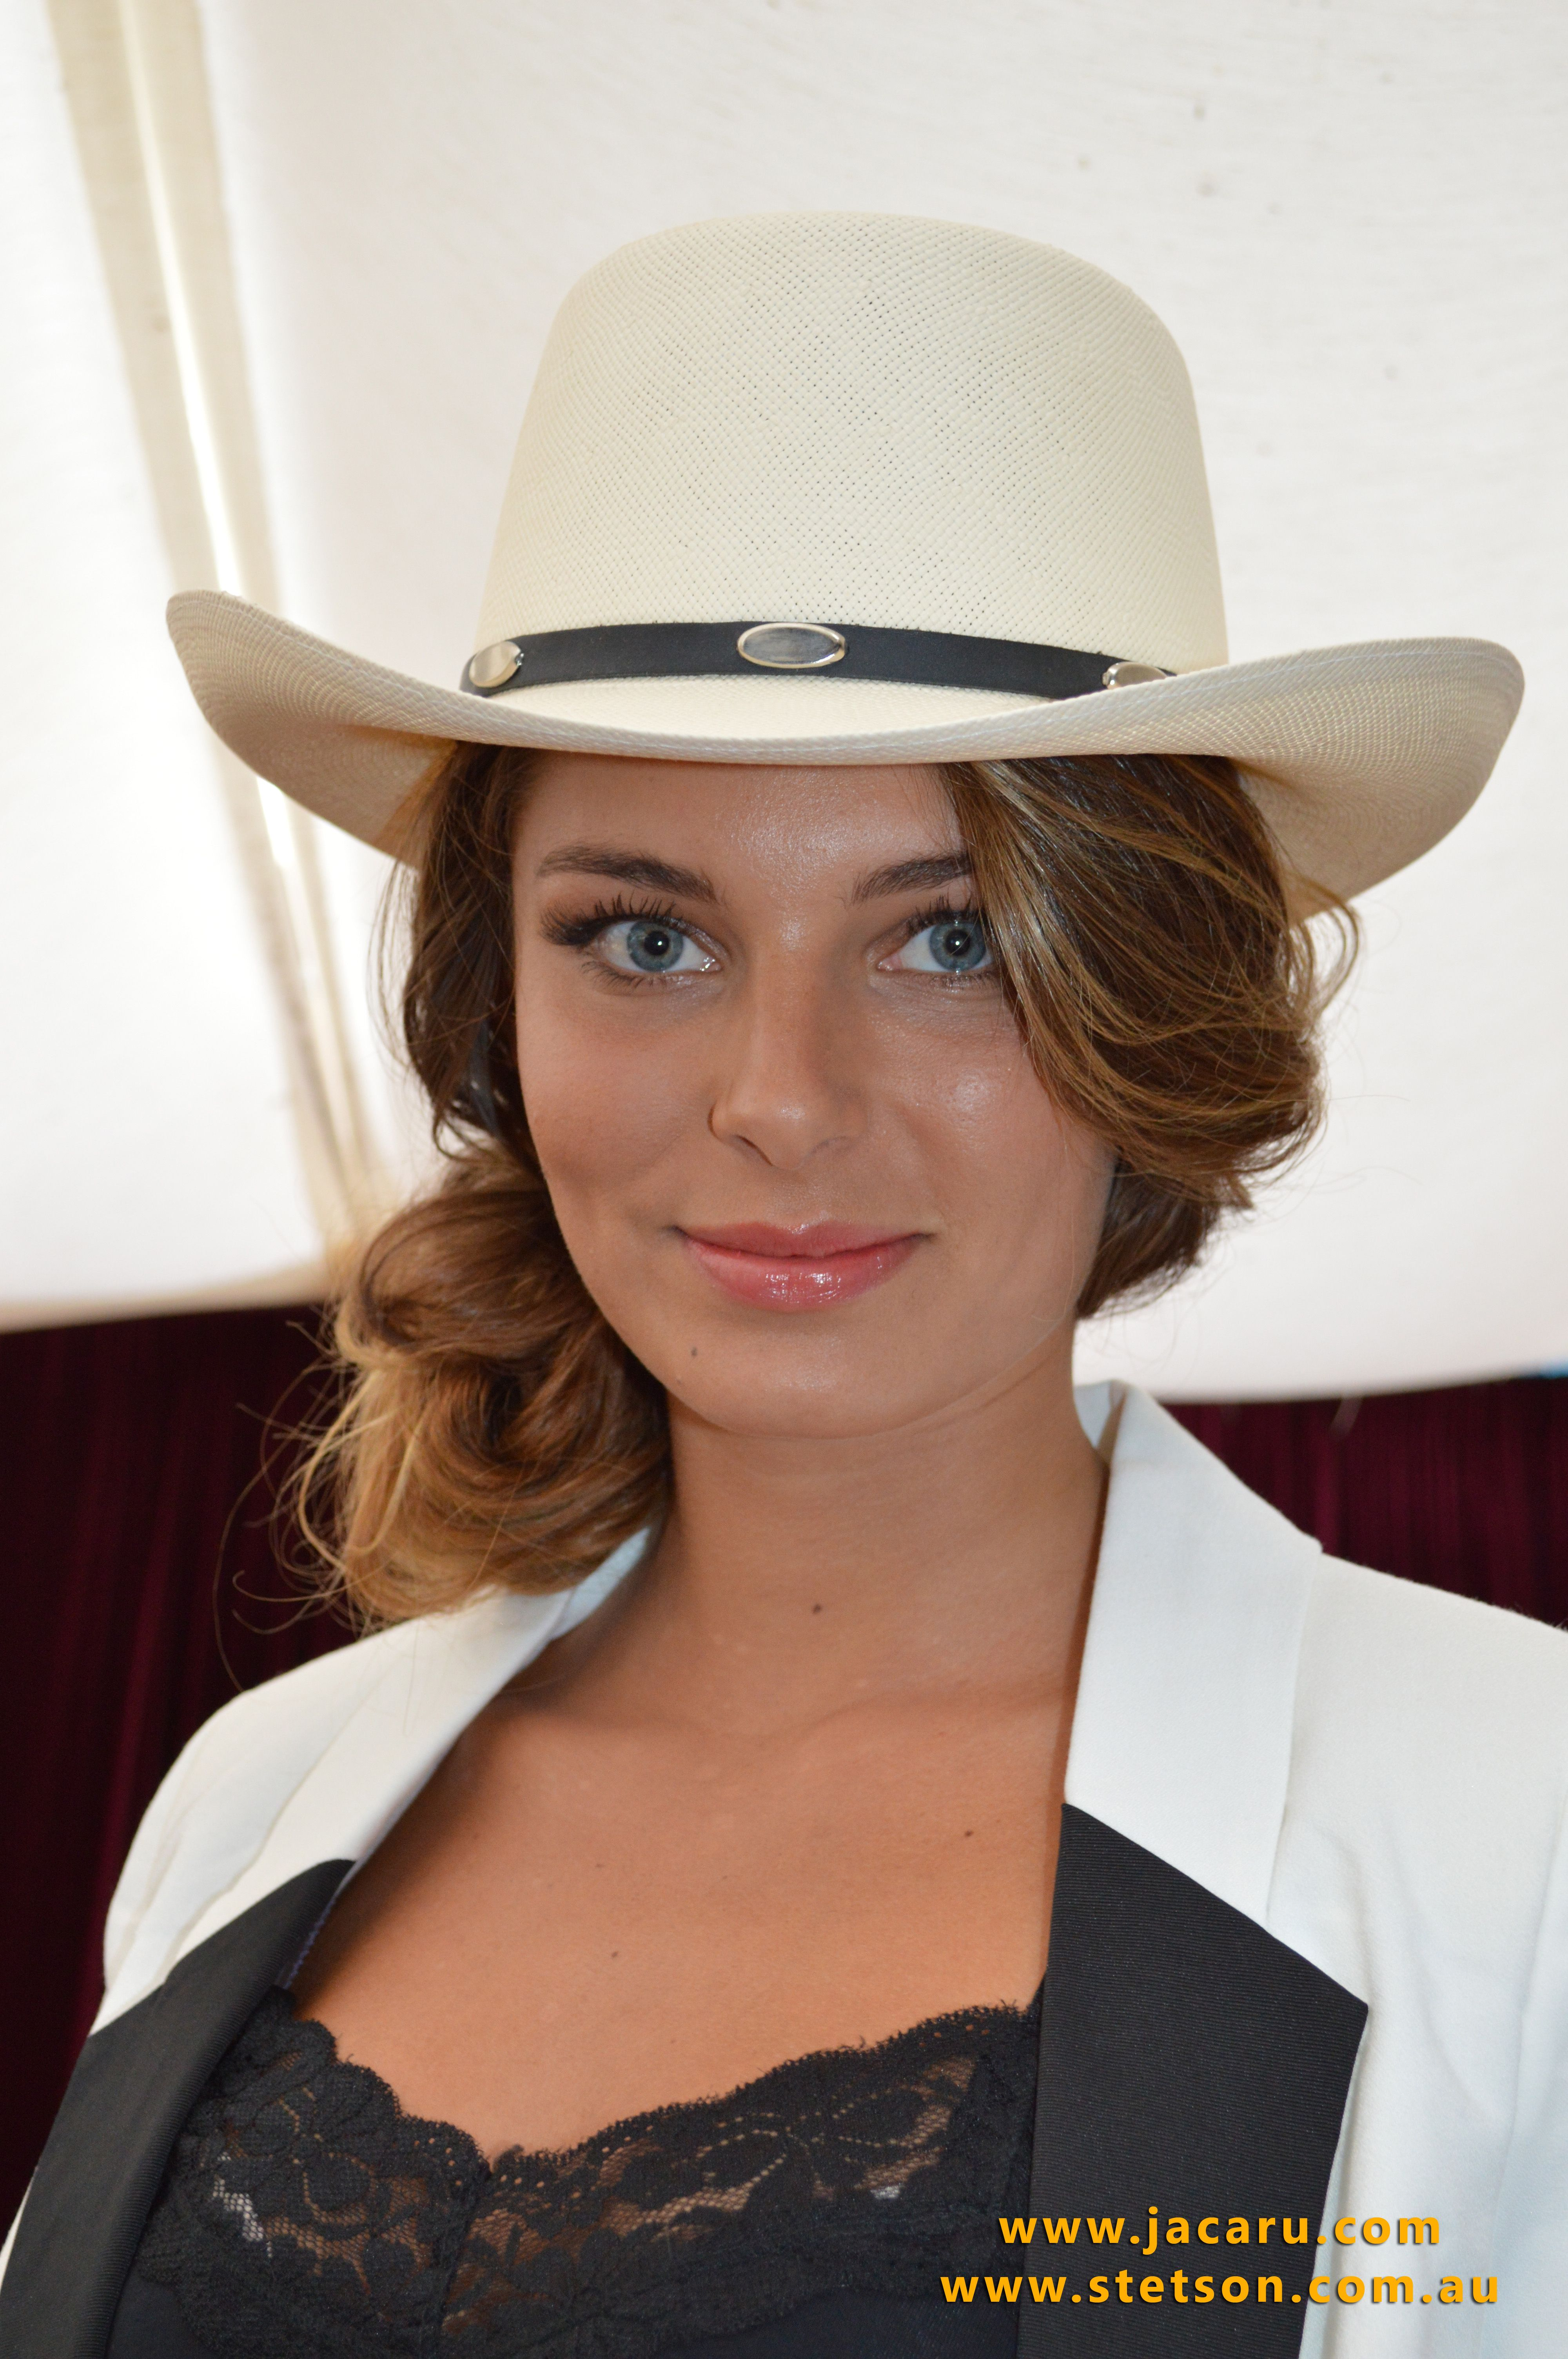 Our model is wearing the STS 25 Royal Flush - Stetson by Jacaru Australia df1b58134ff